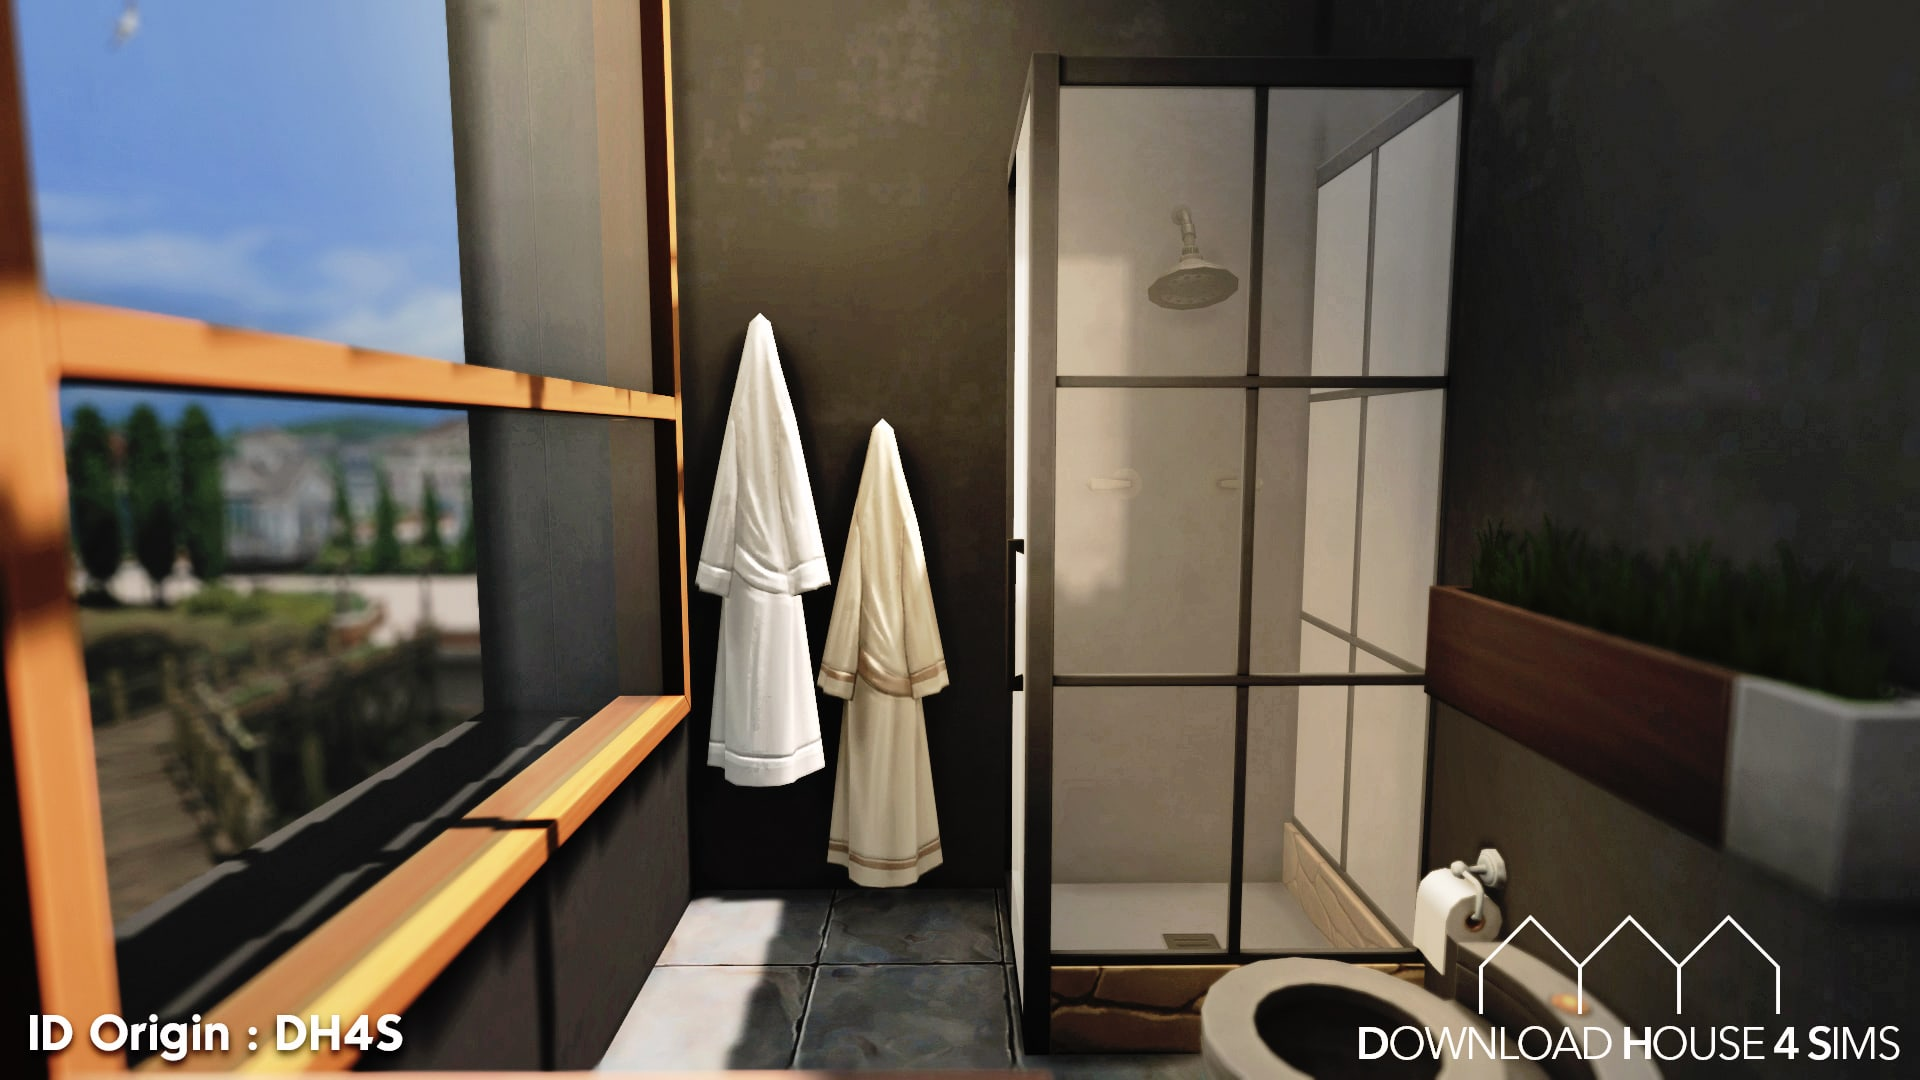 DH4S-Download-house-for-sims-dock-container-eco-house-29